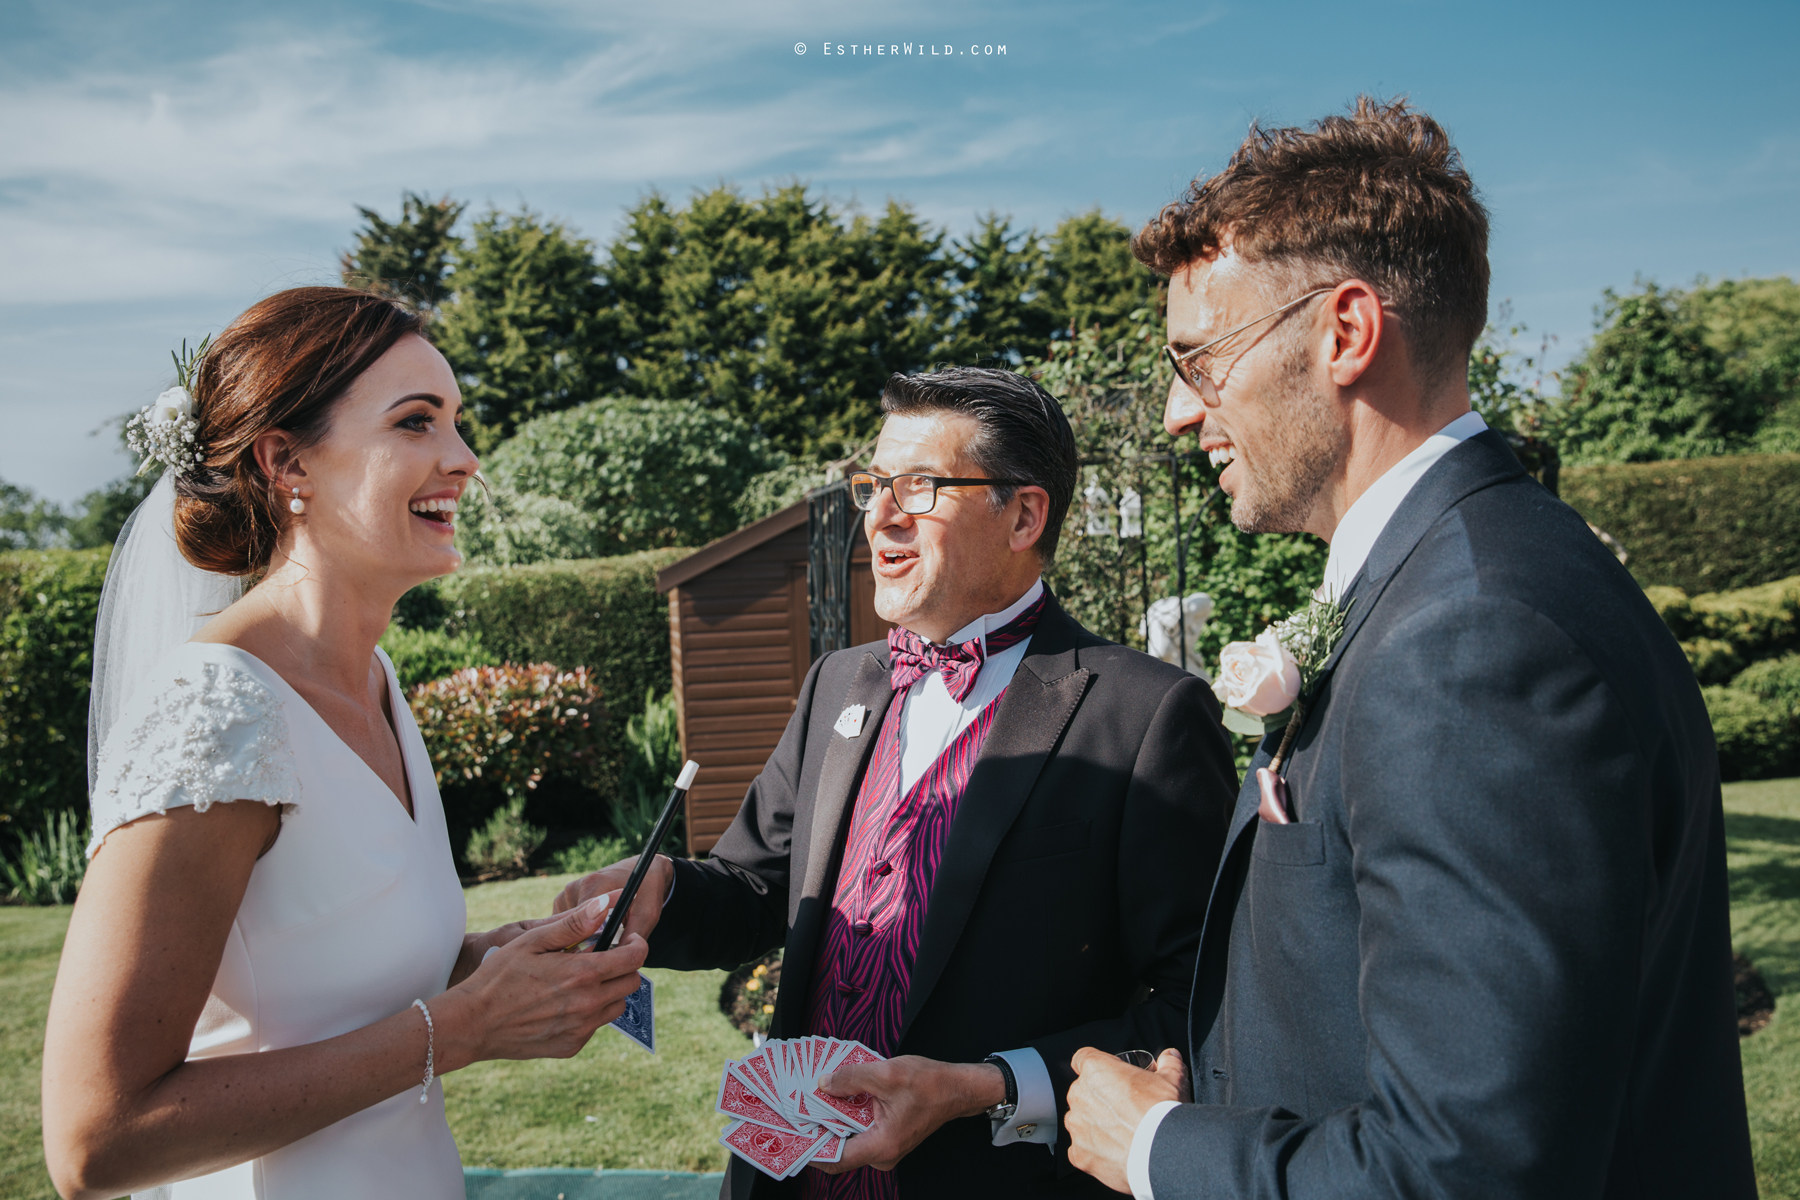 Wootton_Wedding_Copyright_Esther_Wild_Photographer_IMG_2073.jpg